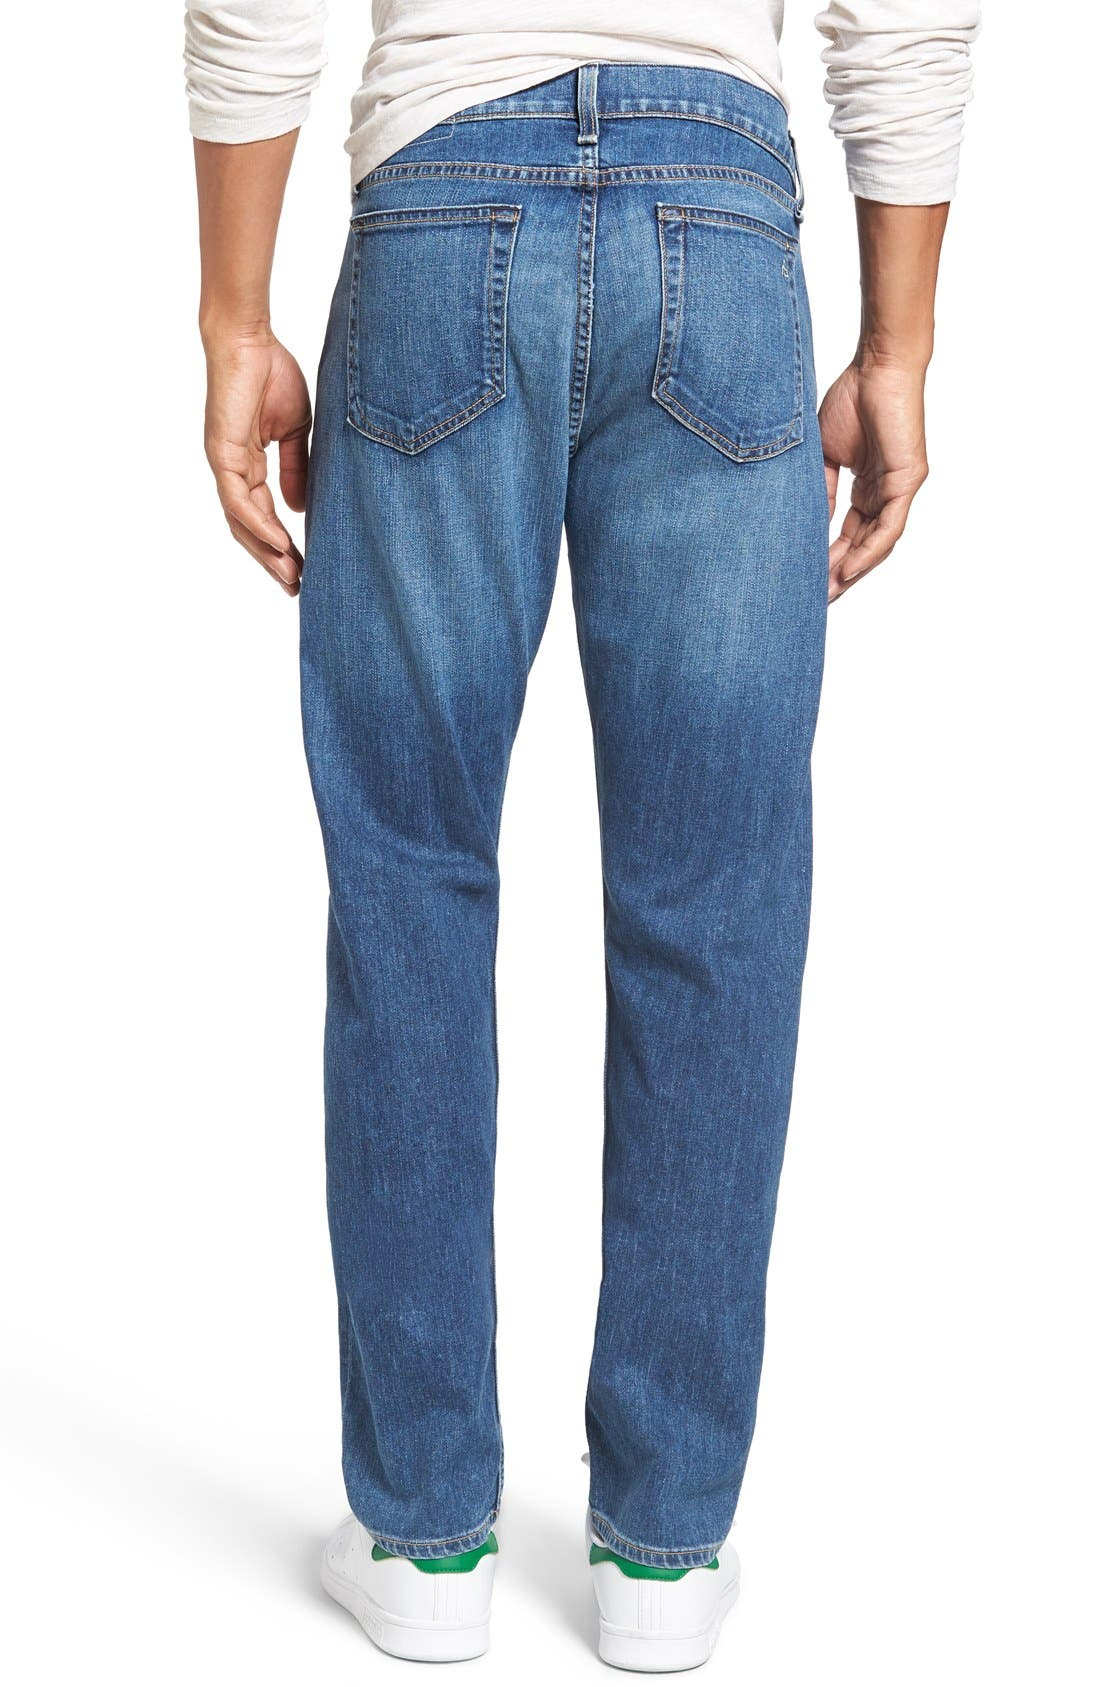 Alternate Image 2  - rag & bone Standard Issue Fit 3 Slim Straight Leg Jeans (Bainbridge)